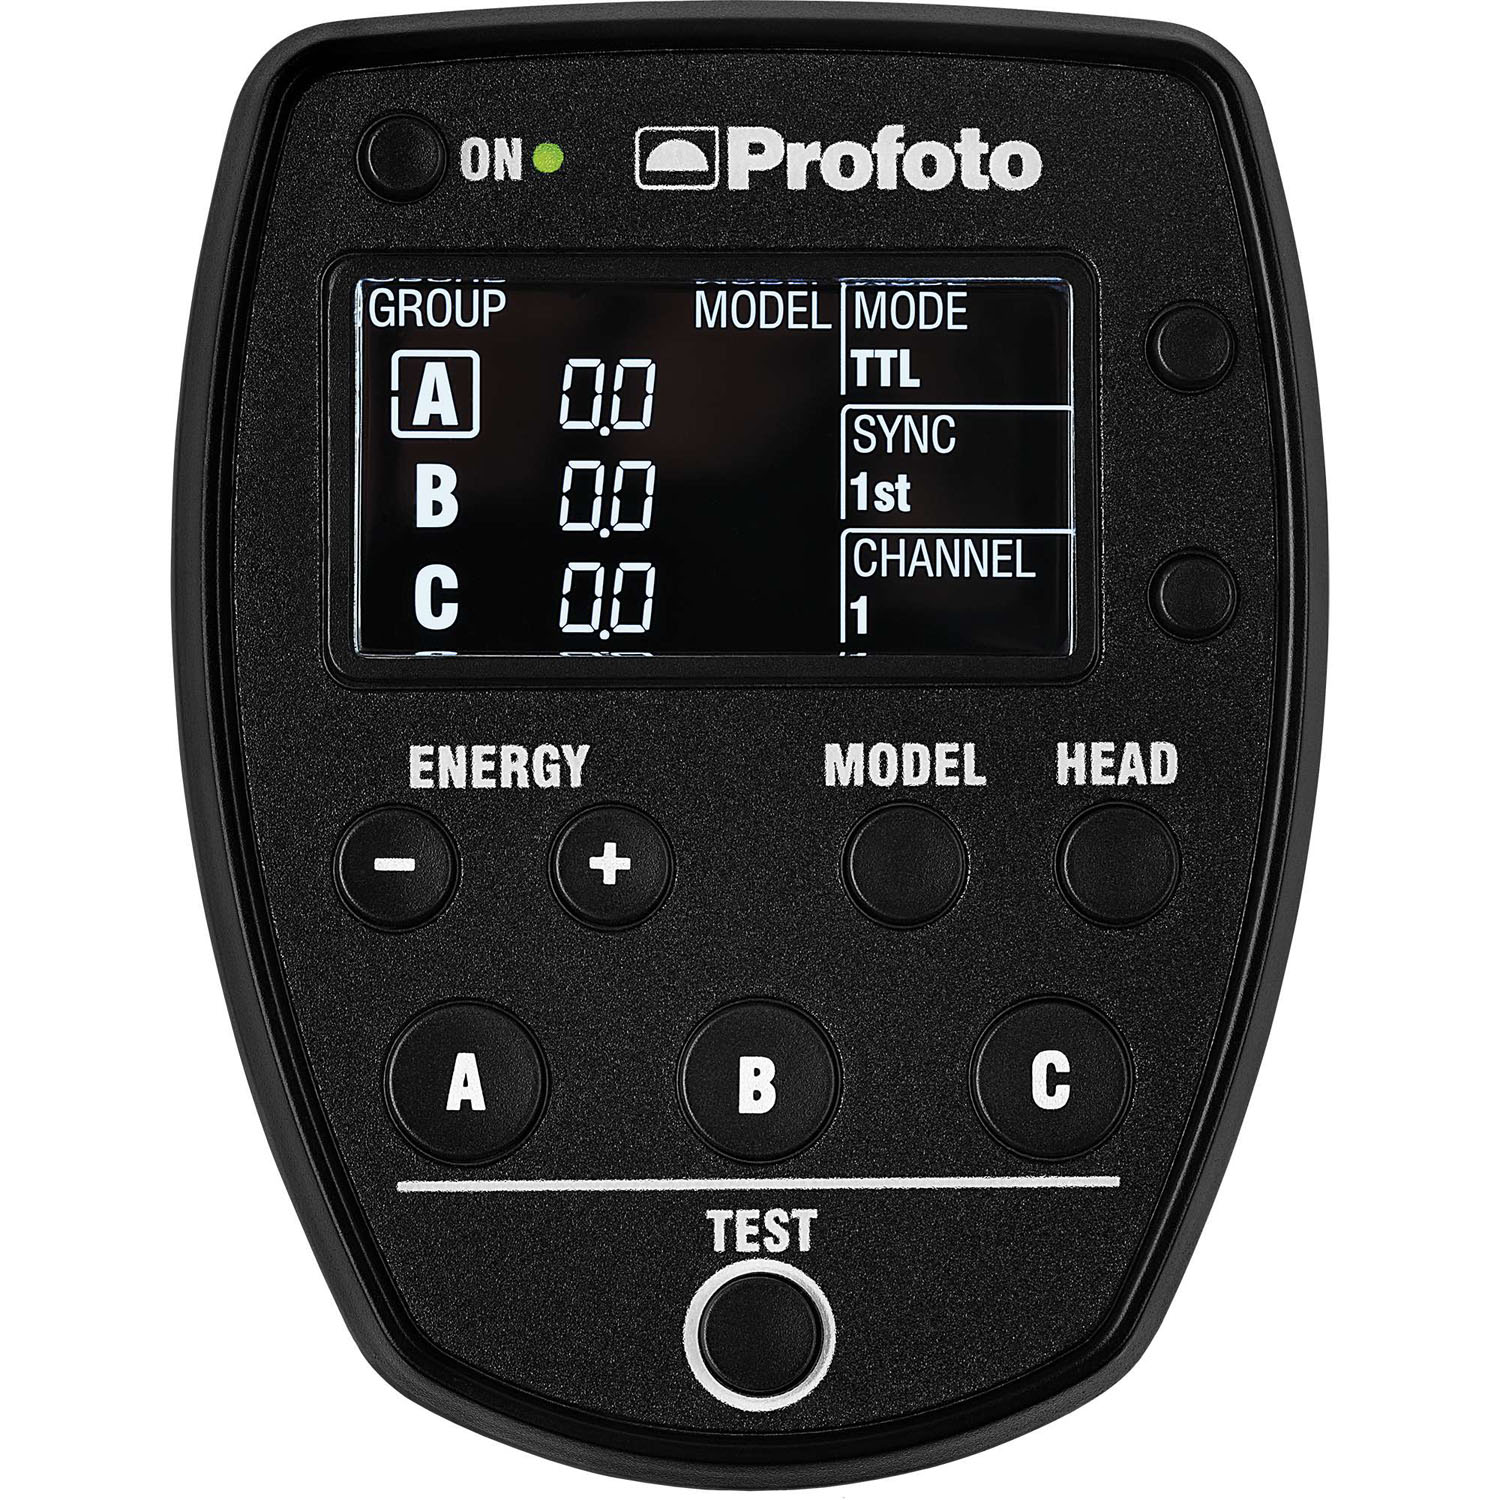 ریموت TTL سونی سری  Profoto Air Remote TTL-S         Air